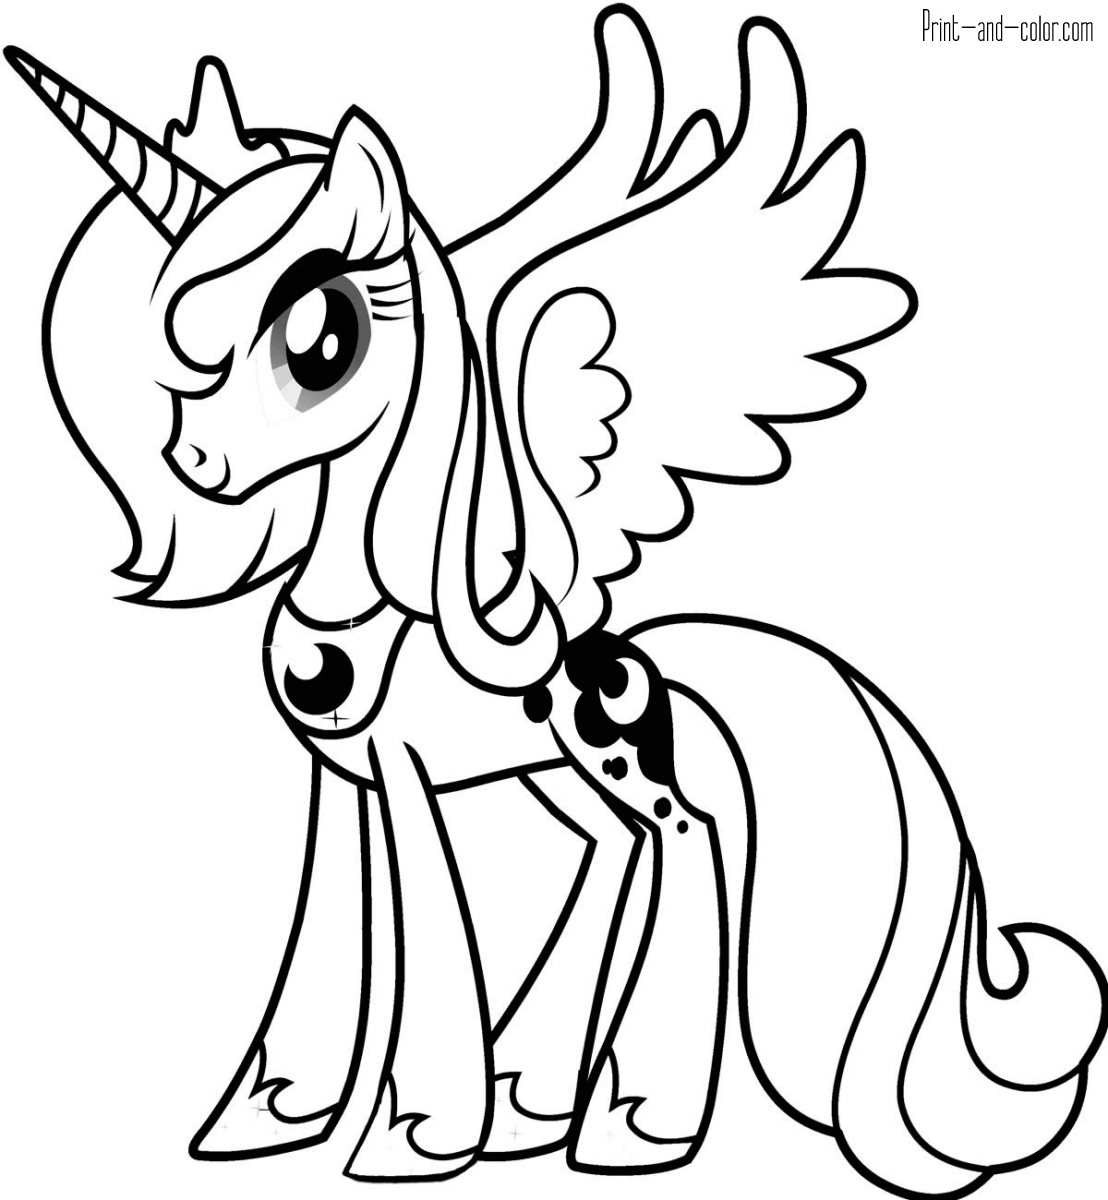 my little pony picters free printable my little pony coloring pages for kids little pony picters my